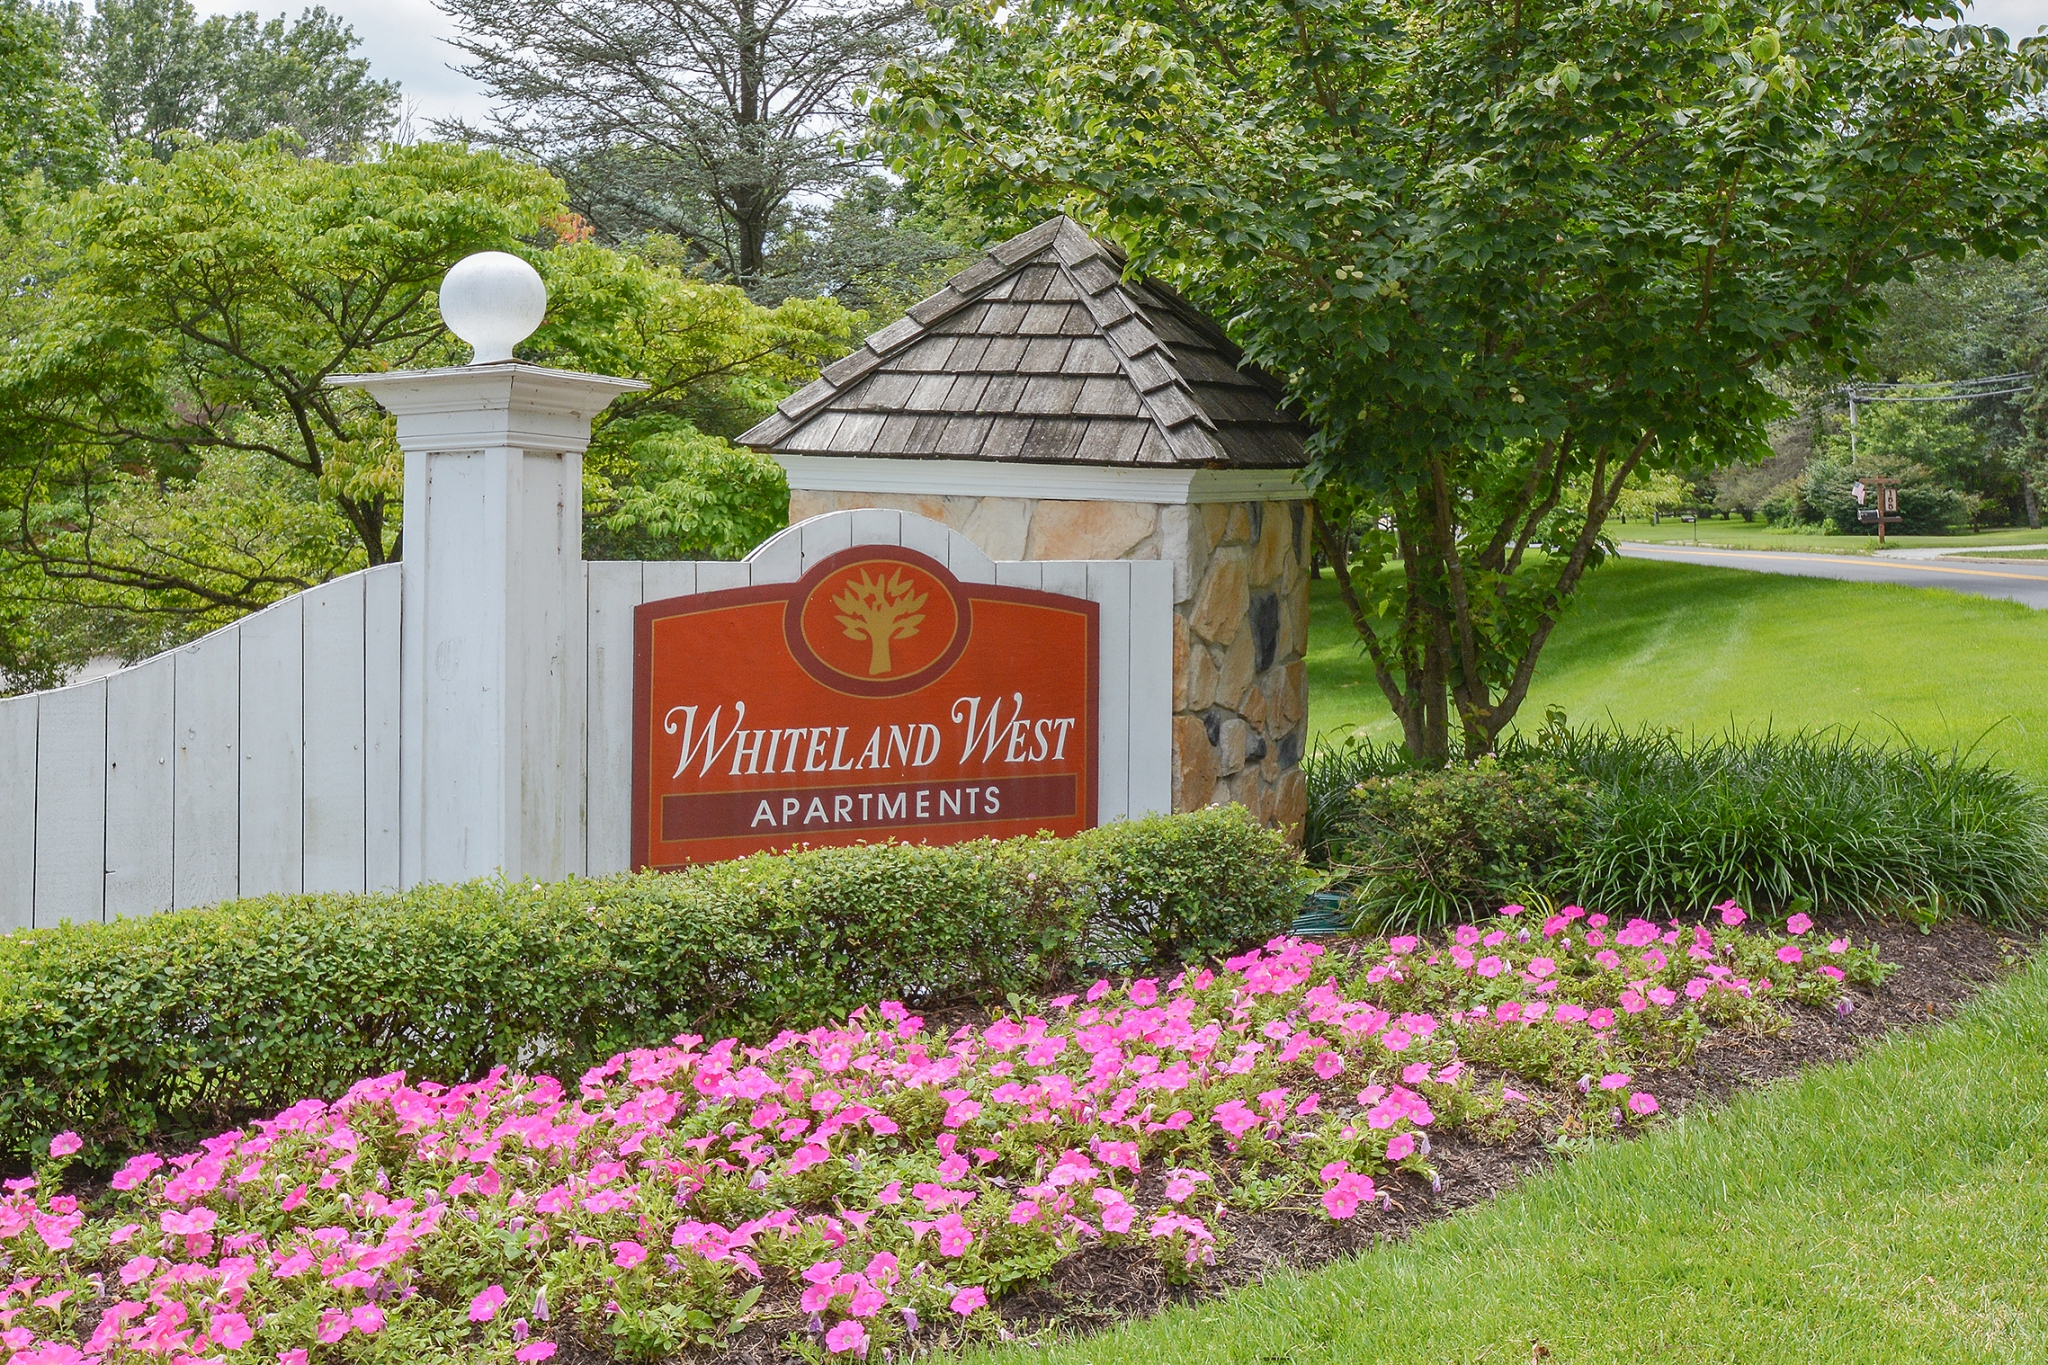 Whiteland West Red Welcome Sign | Apartments near Exton PA